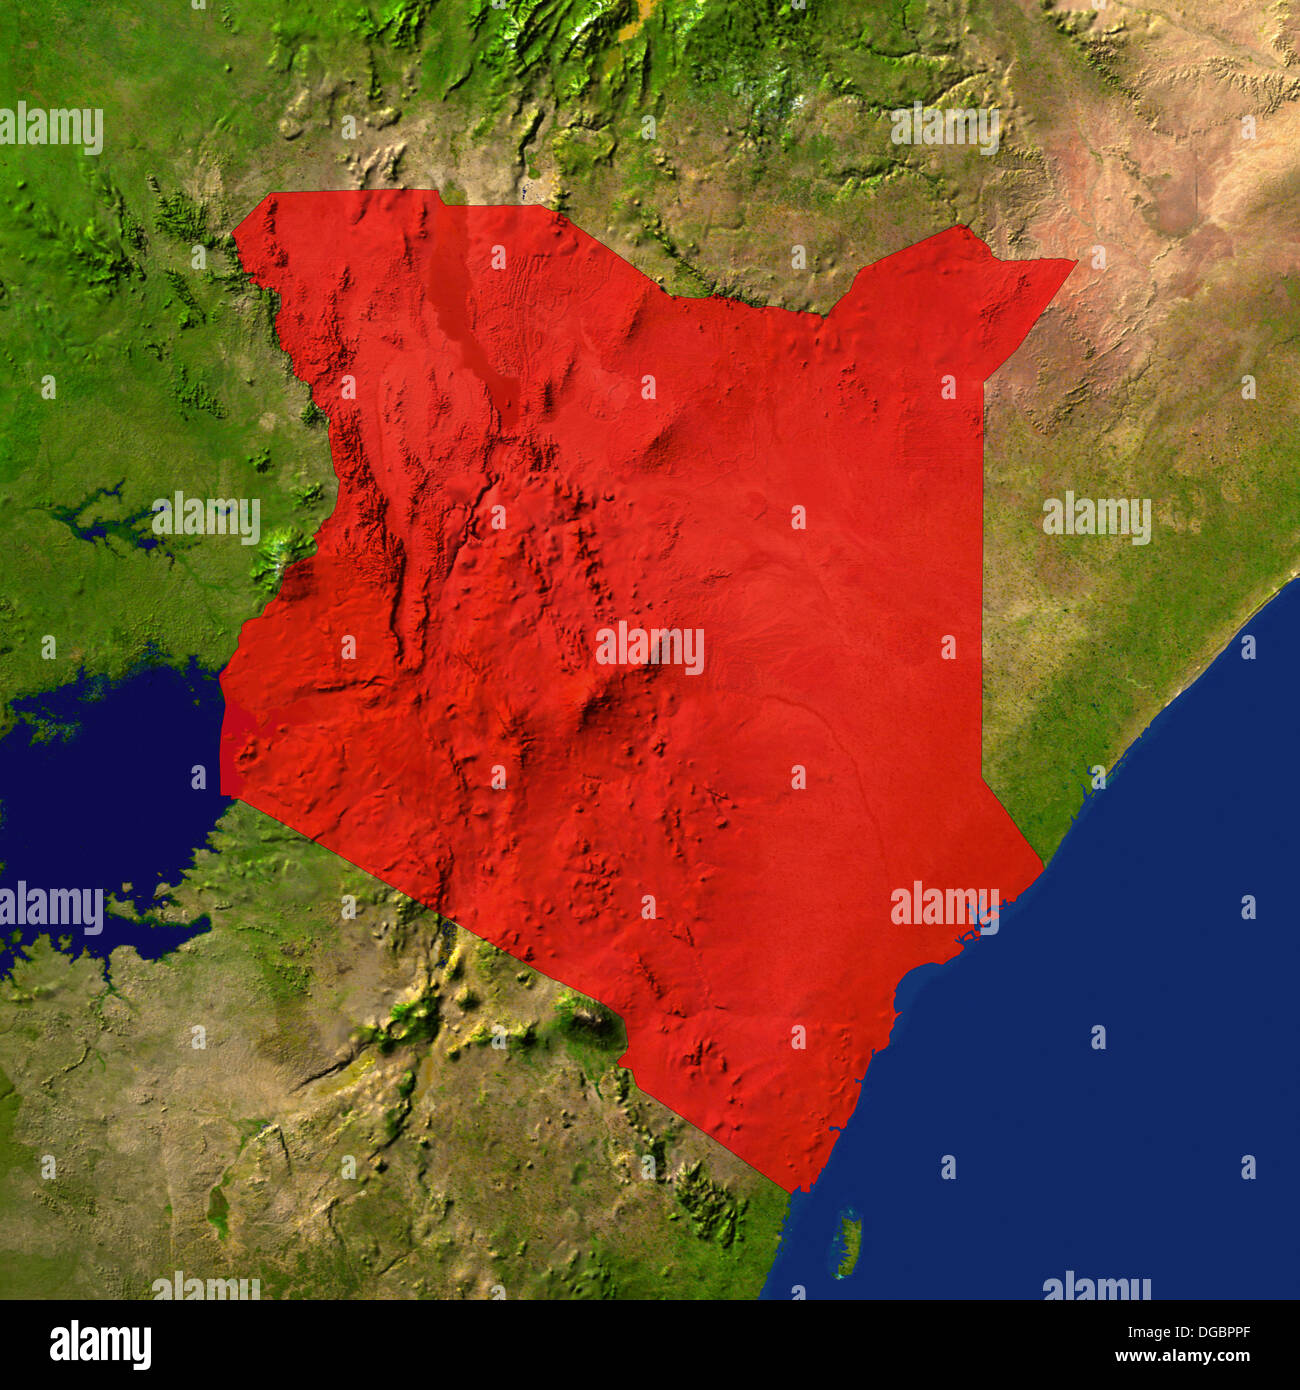 Map Satellite Geography Kenya High Resolution Stock Photography And Images Alamy